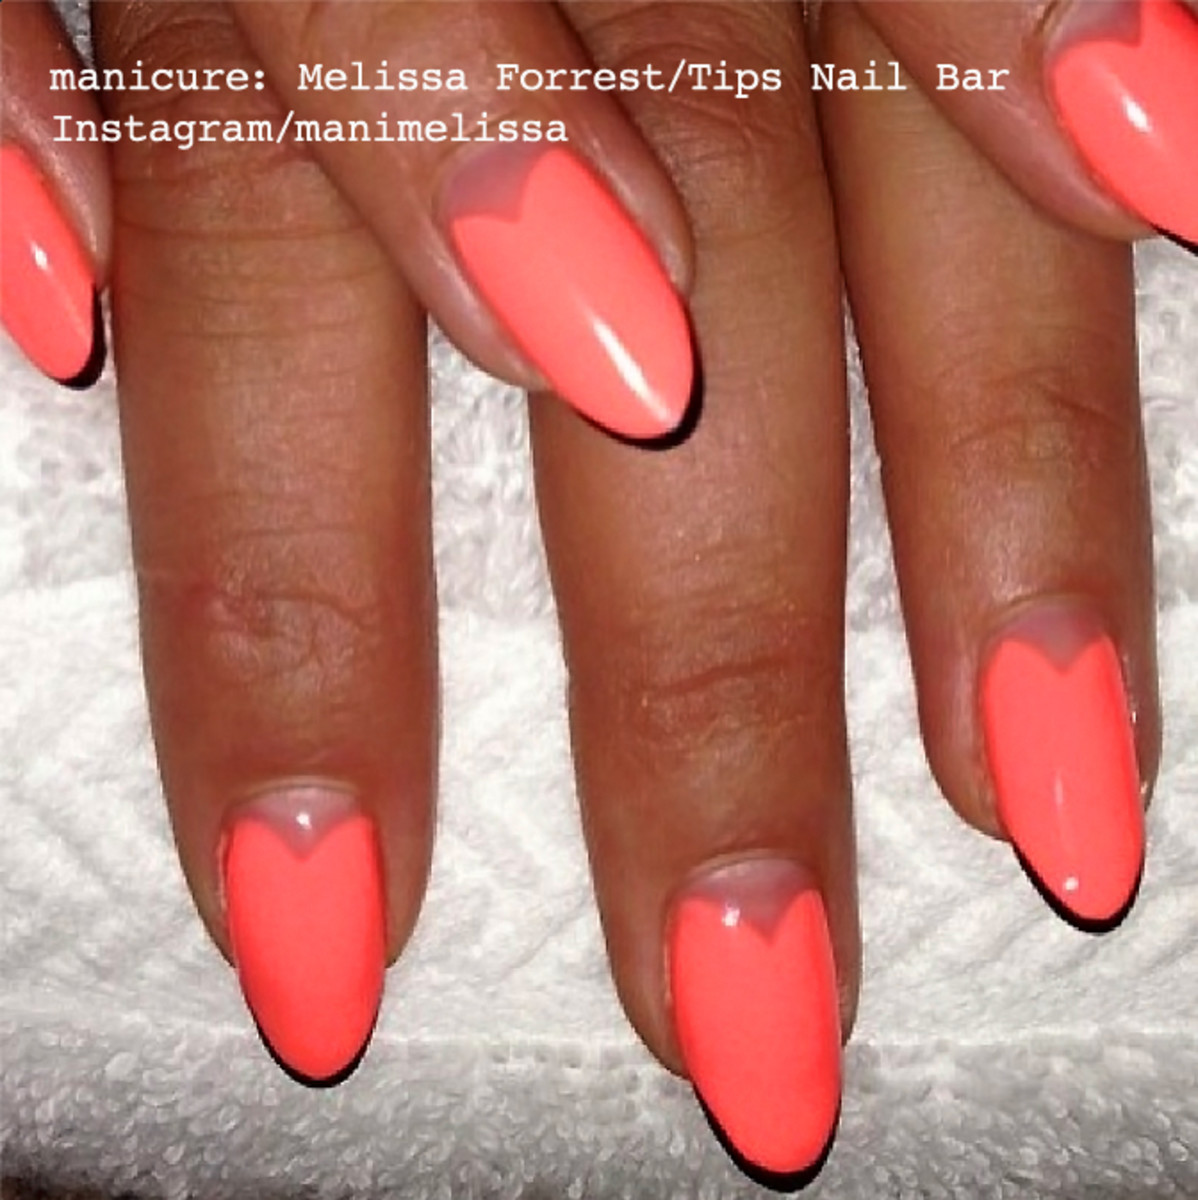 the scalloped manicure_tulip manicure_sweetheart manicure_Melissa Forrest